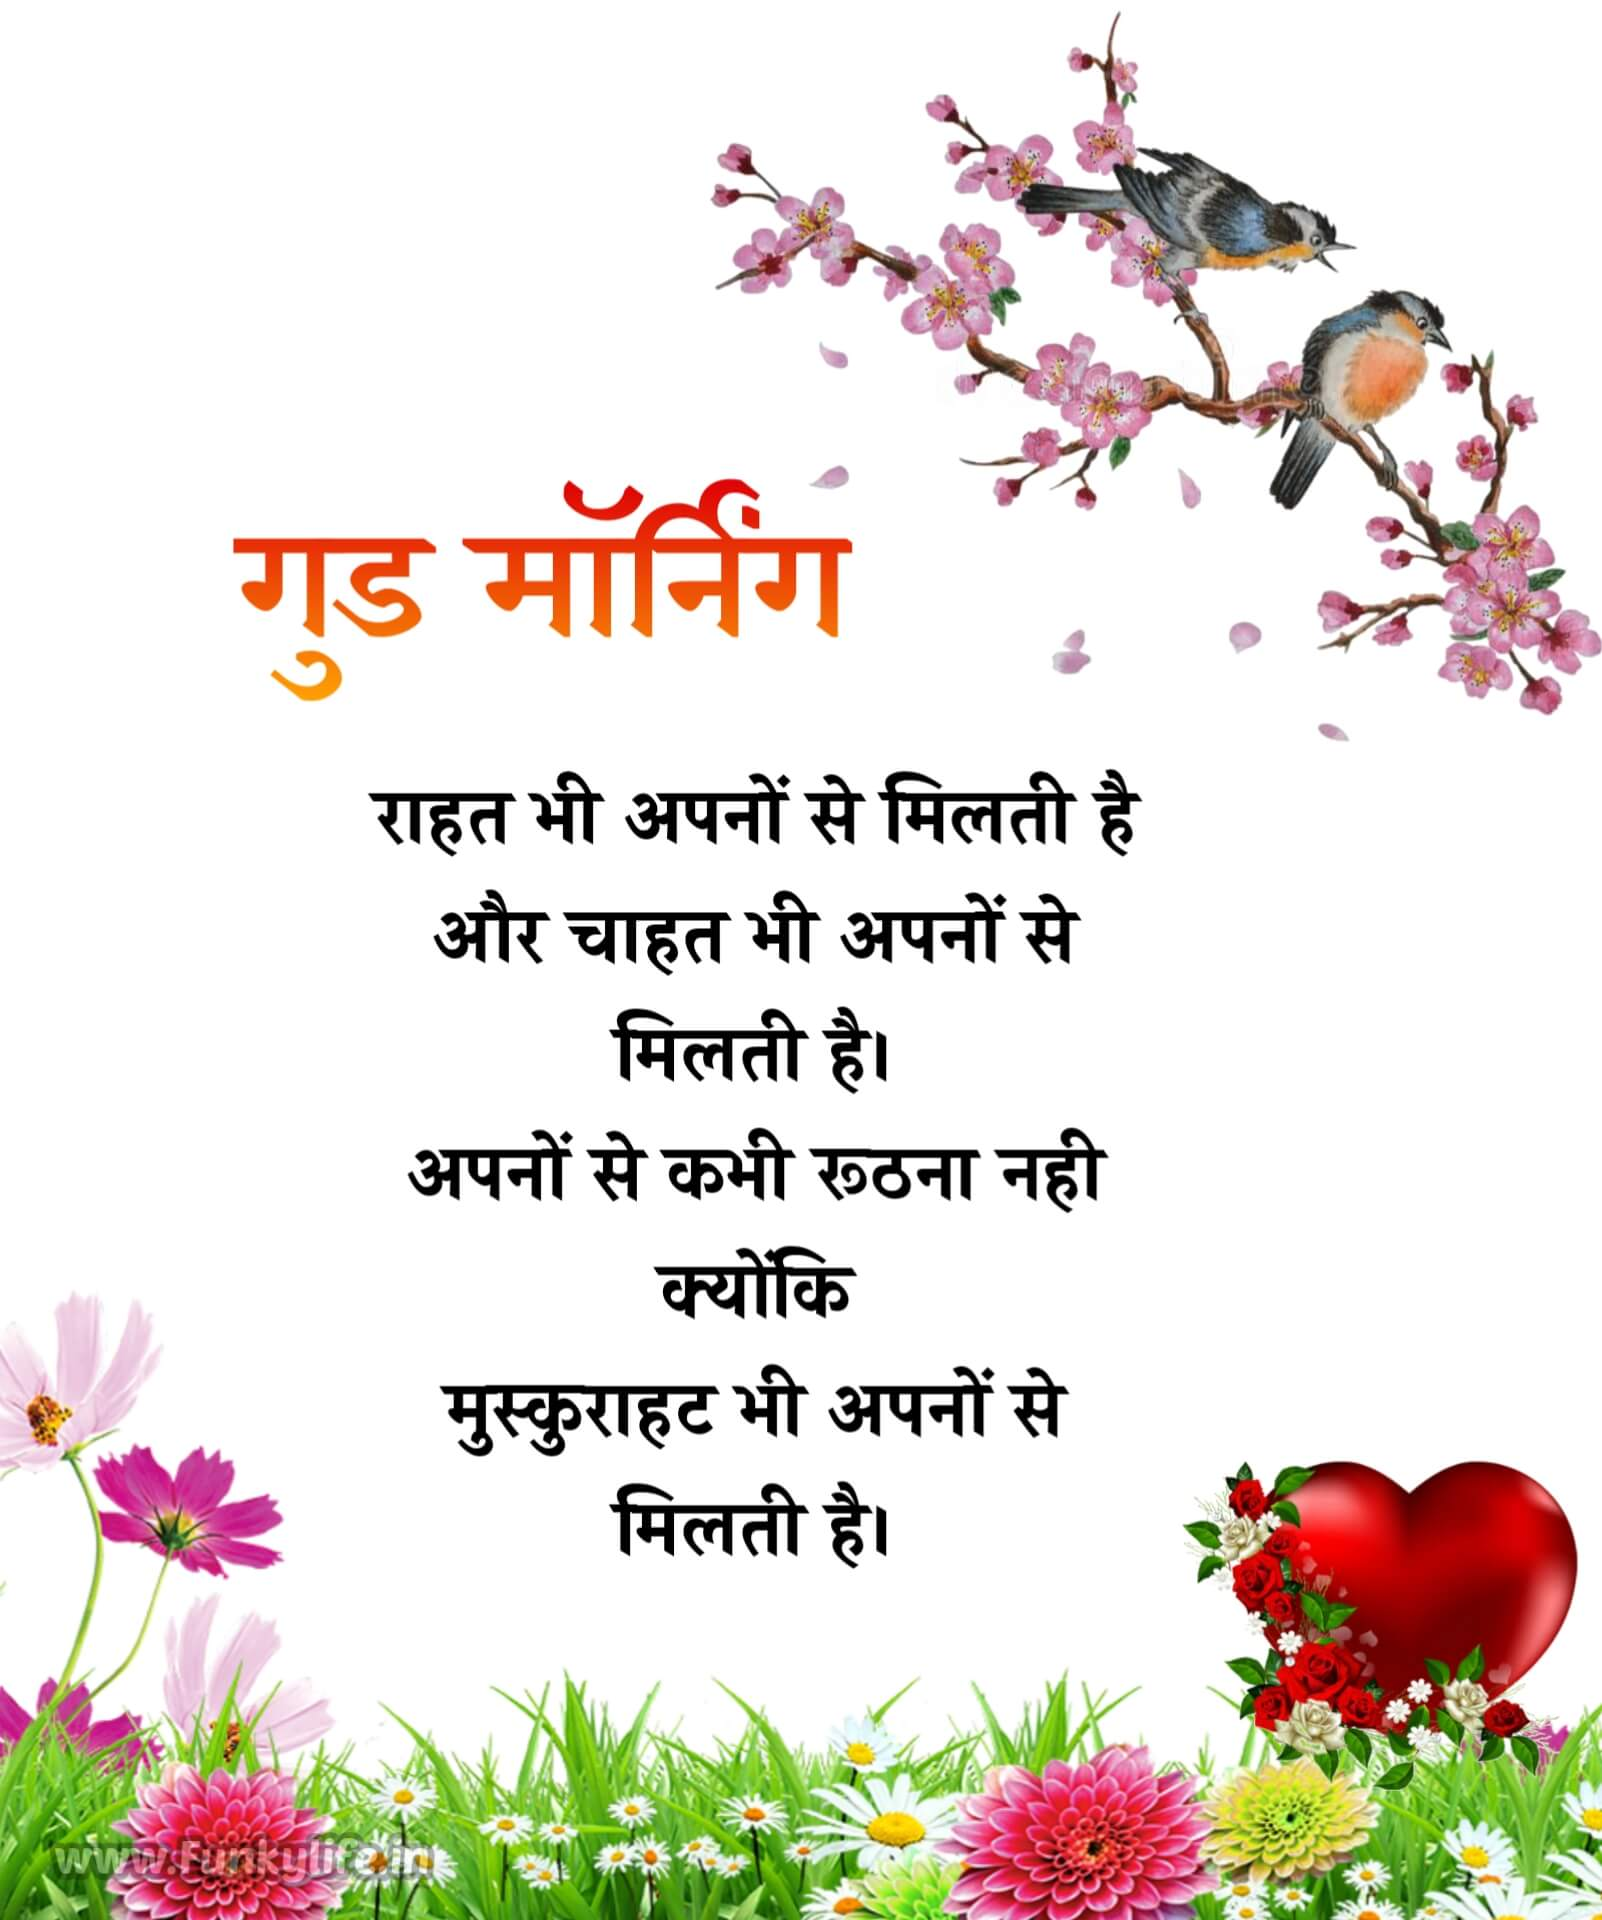 Good morning Quotes in Hindi For Family funkylife